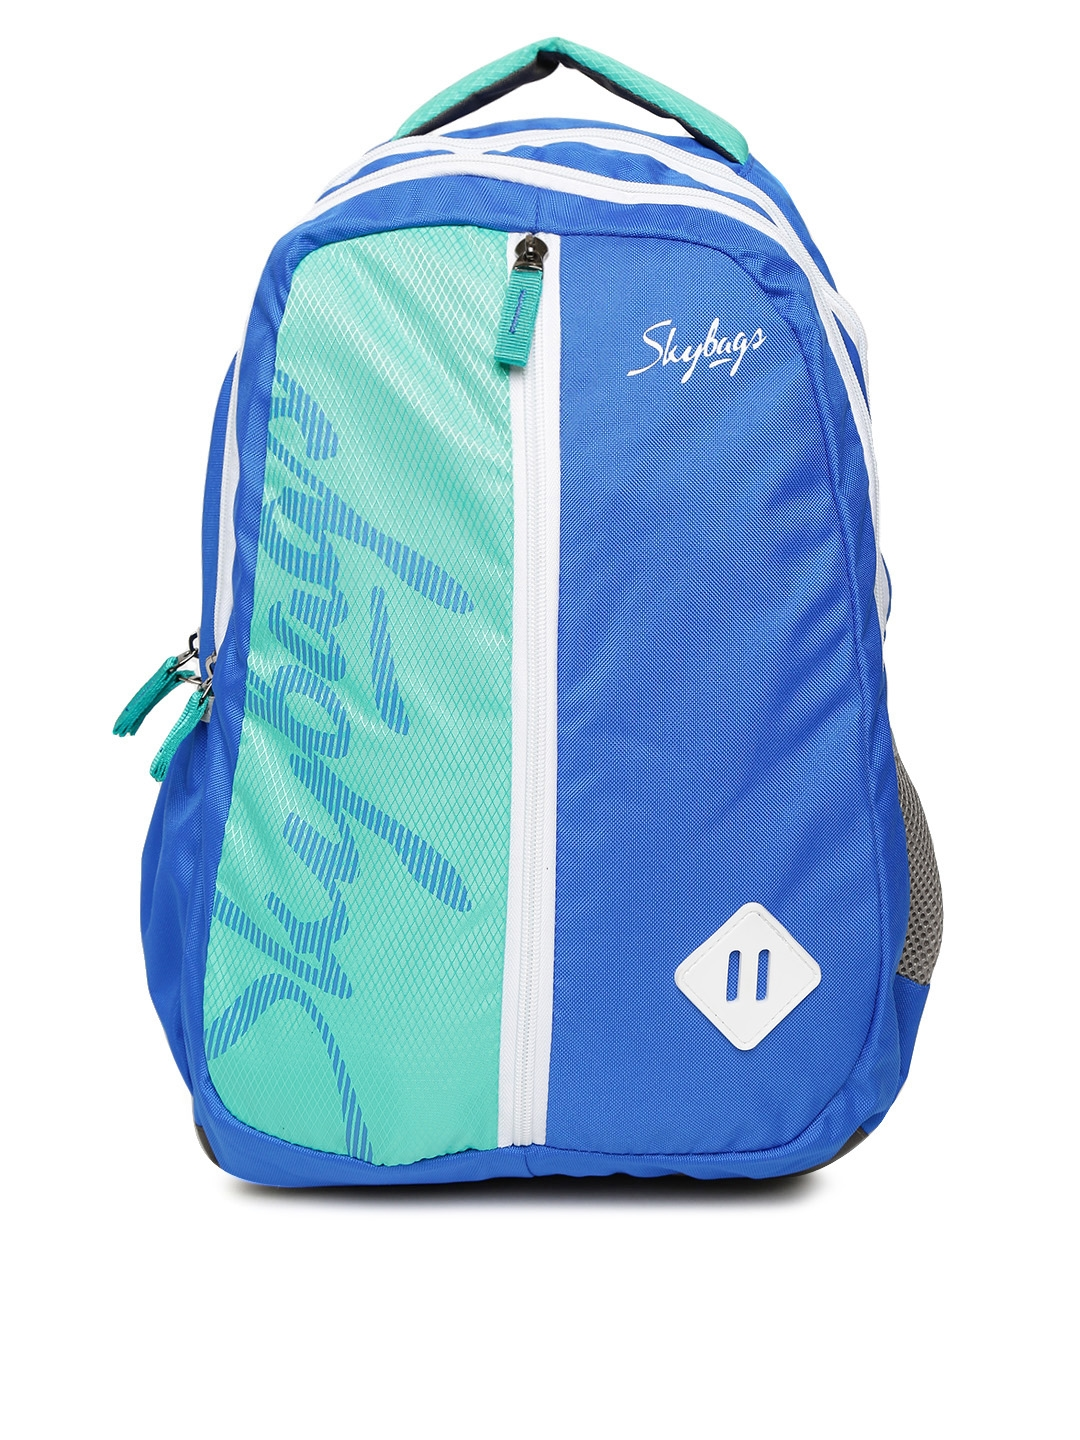 fb8d0af22533 Buy Skybags Unisex Blue   Sea Green Colourblocked Backpack ...